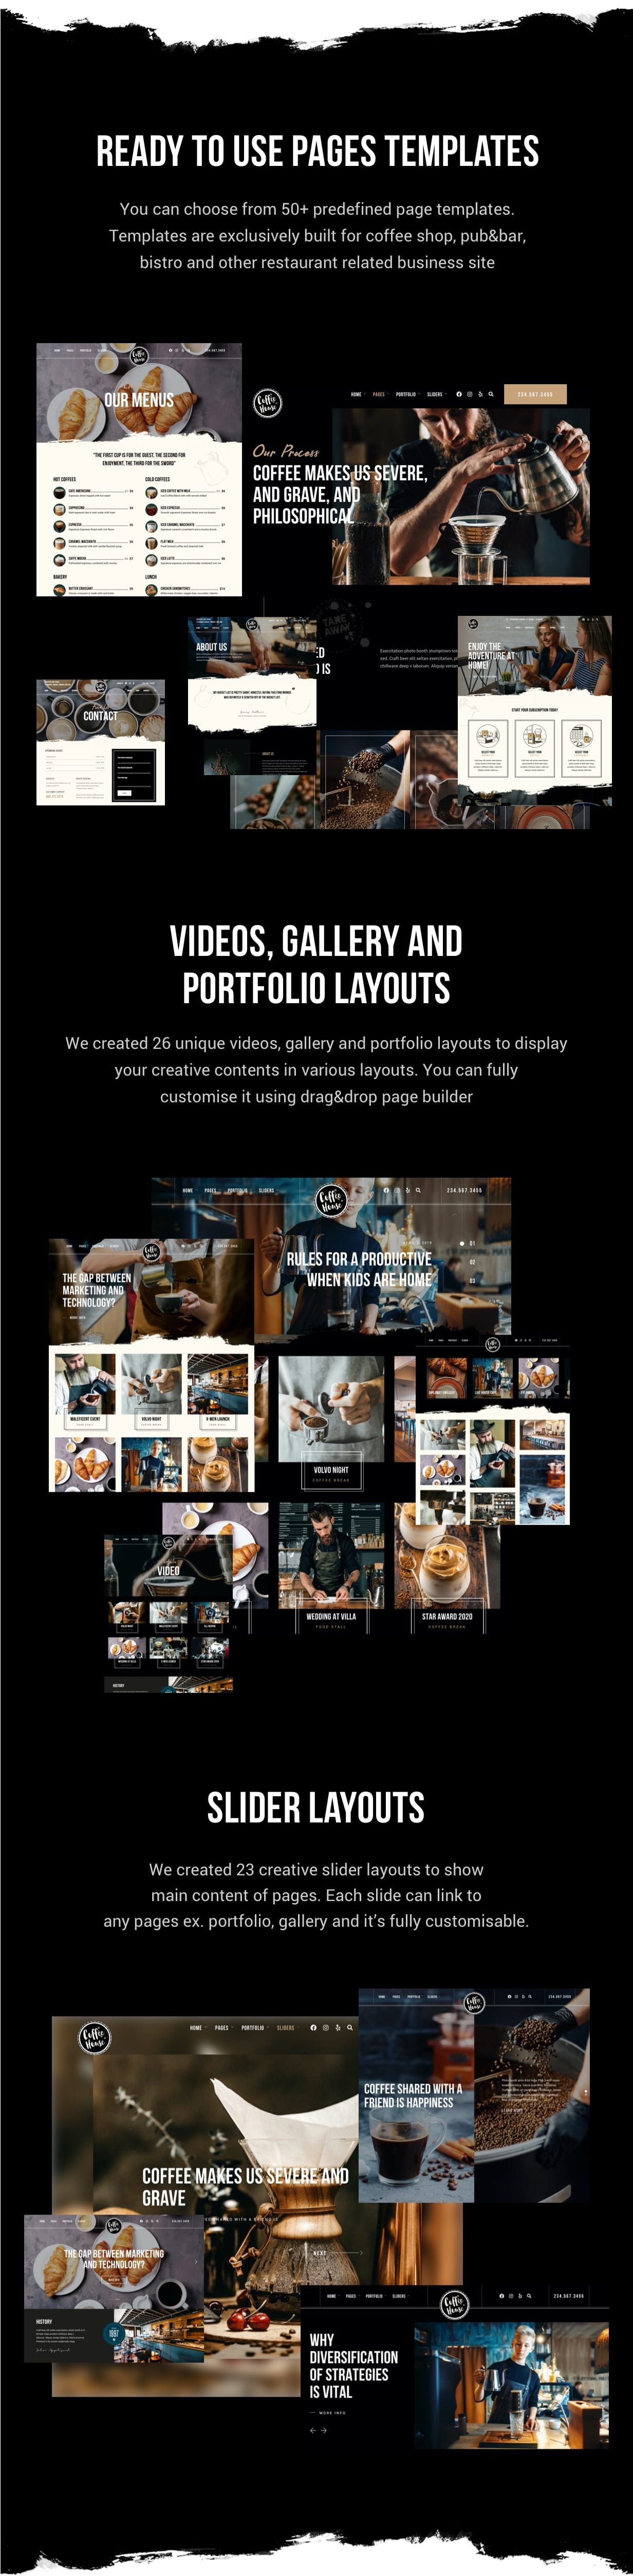 07 page templates